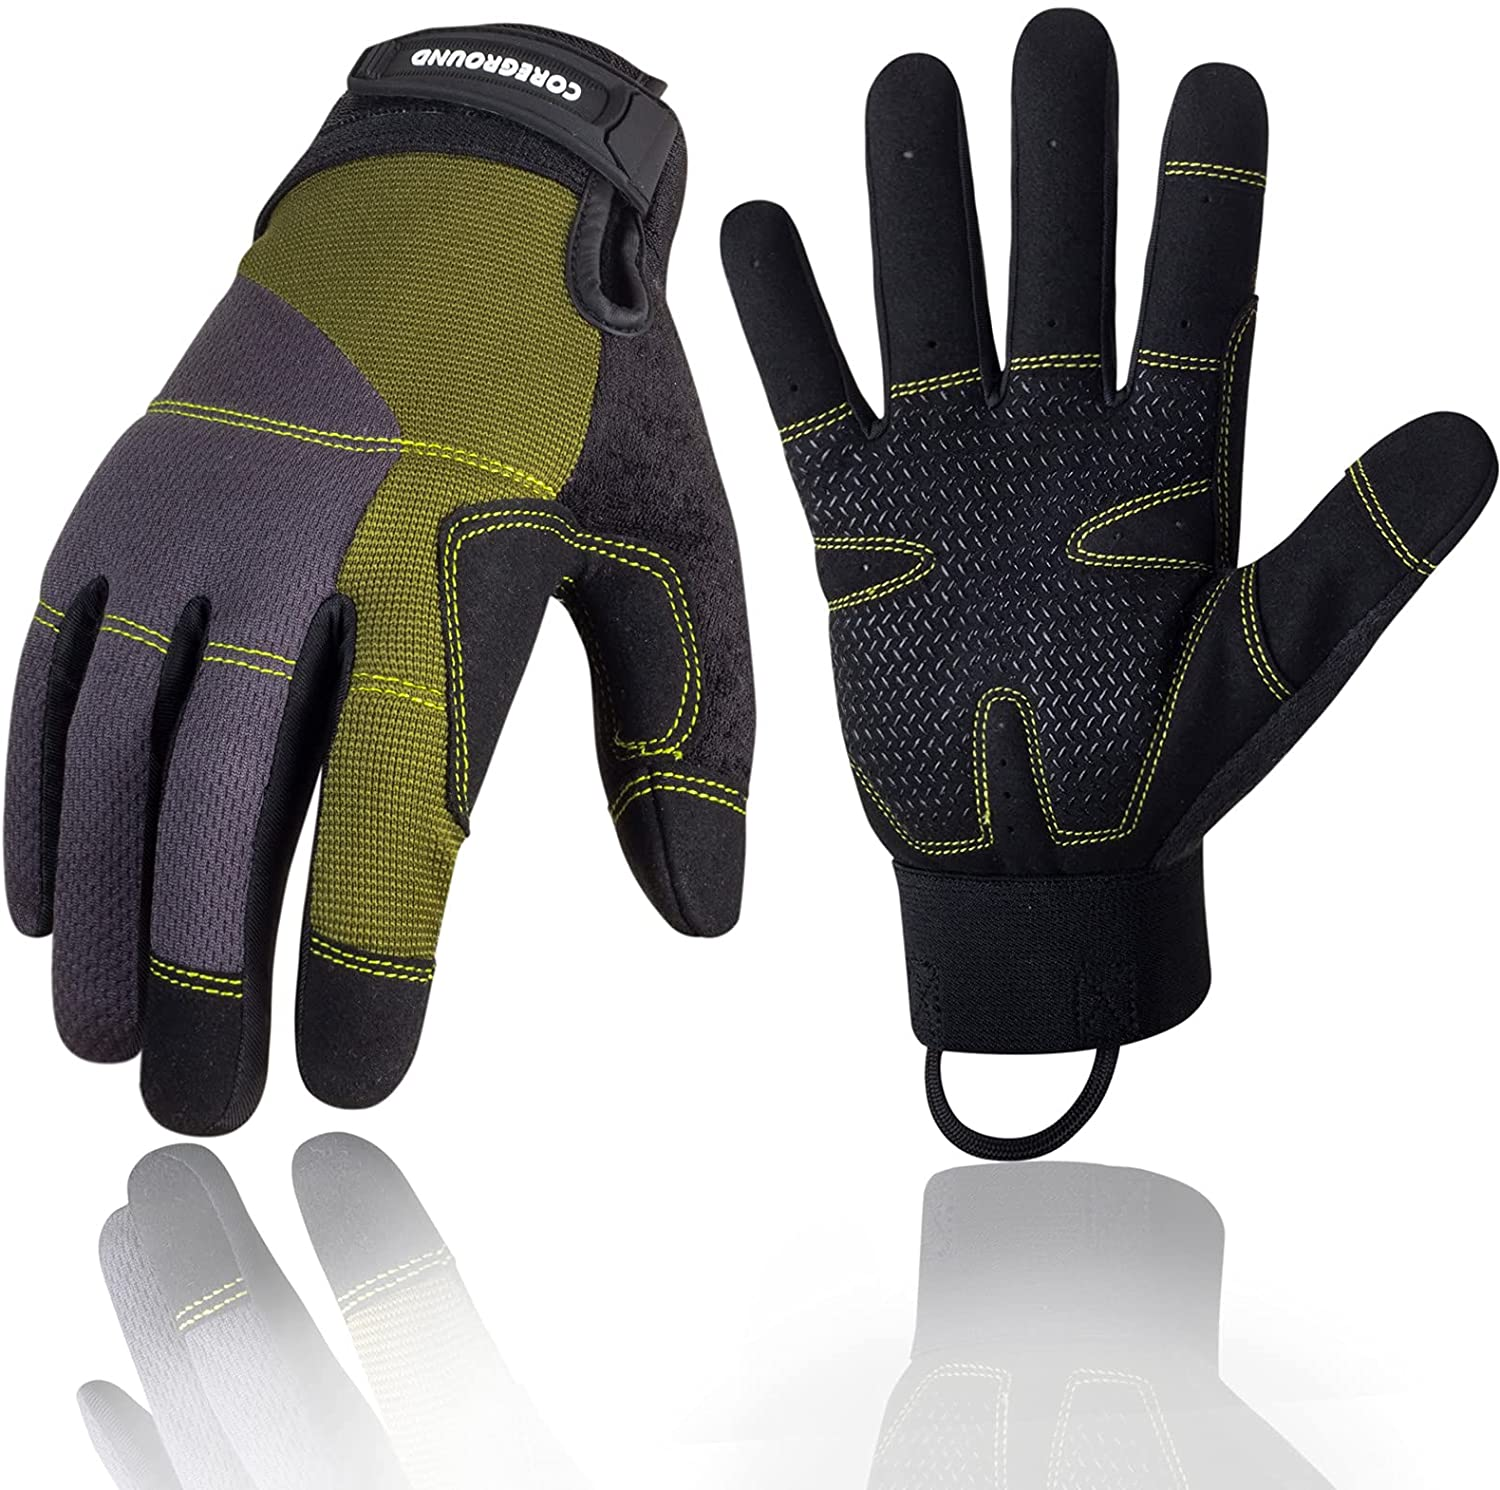 Mechanic Glove Saftey Classic Work Gloves Women Men and Super Special SALE held Touchscreen Sili